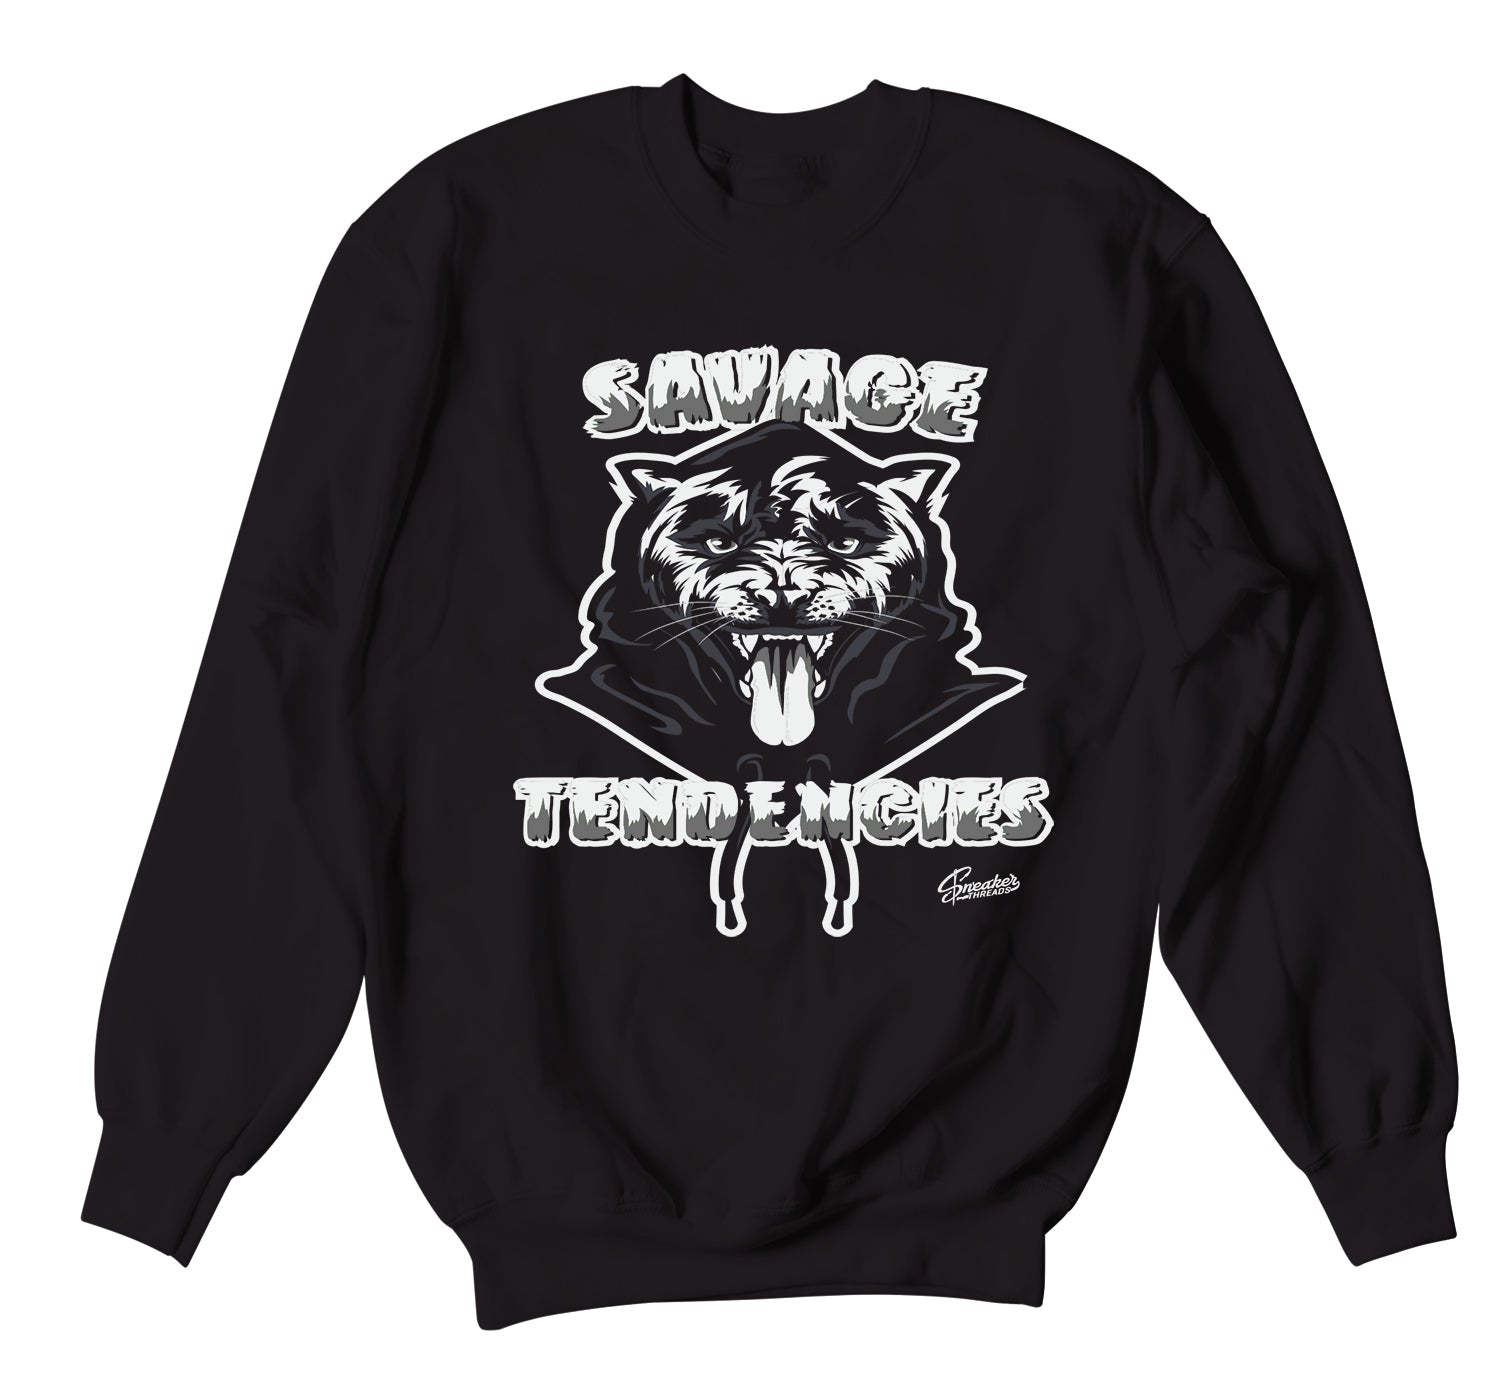 Jordan 4 Black Cat Savage Tendencies Sweater